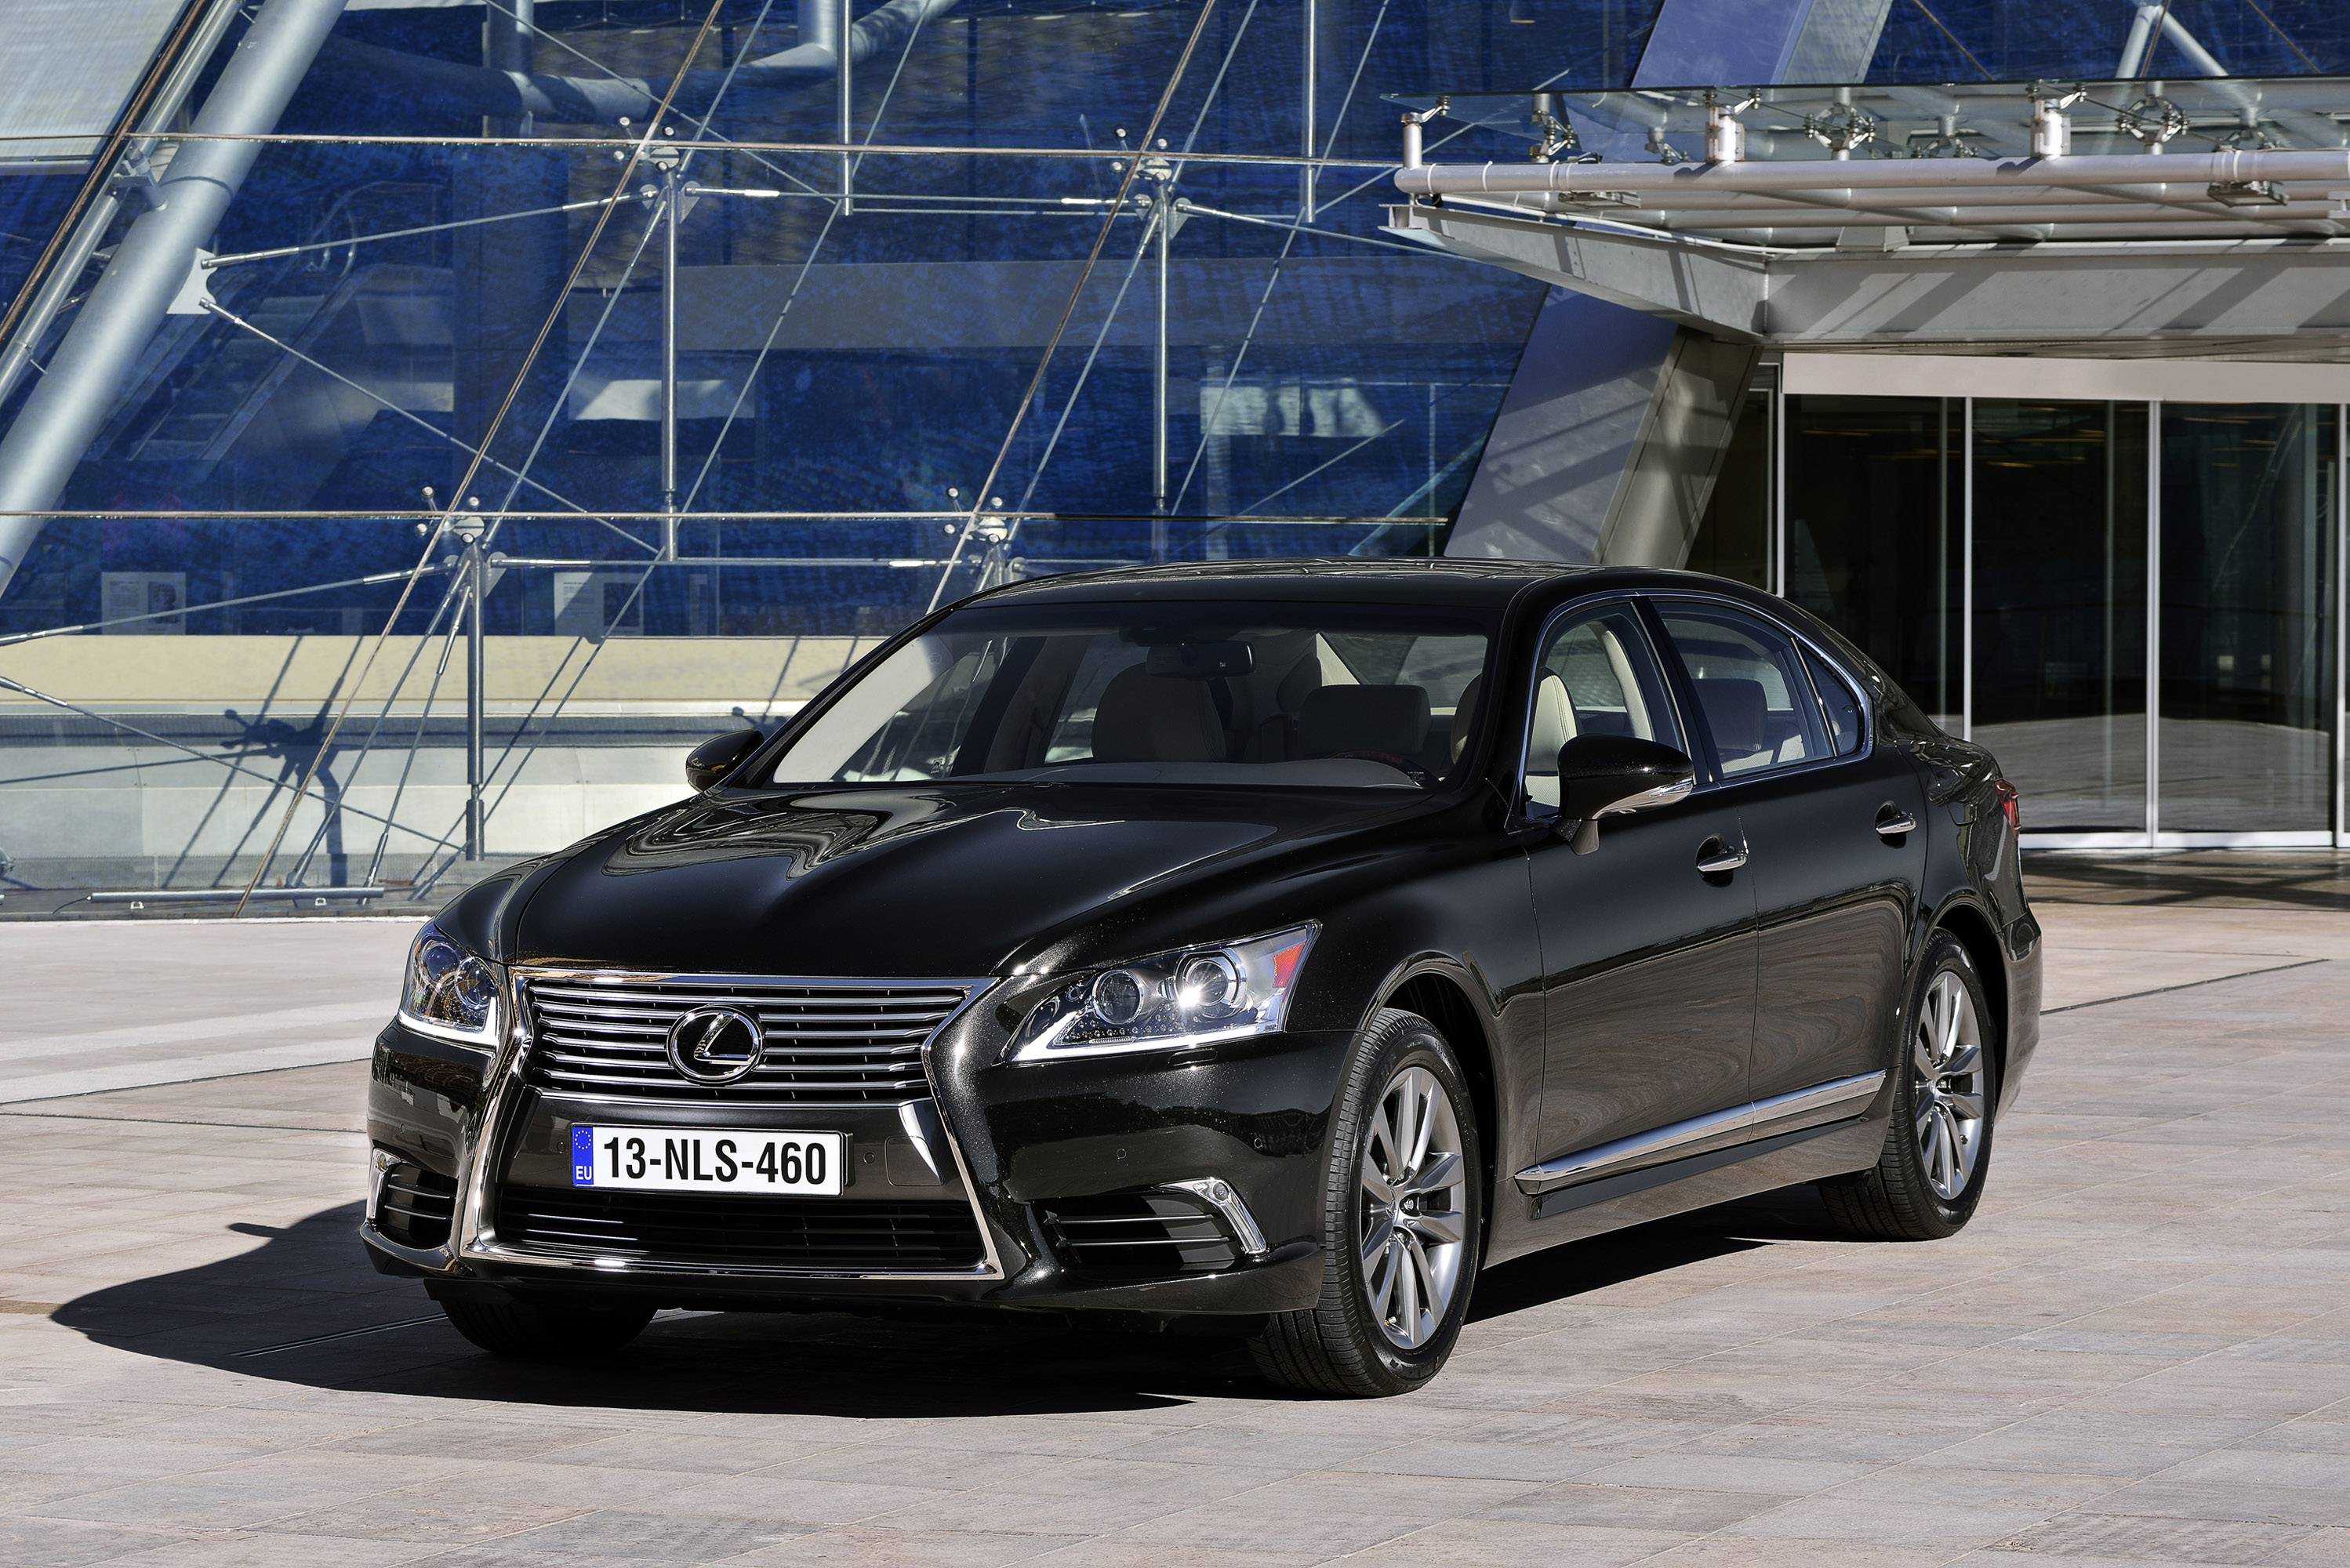 Lexus LS EU-Version photo #1